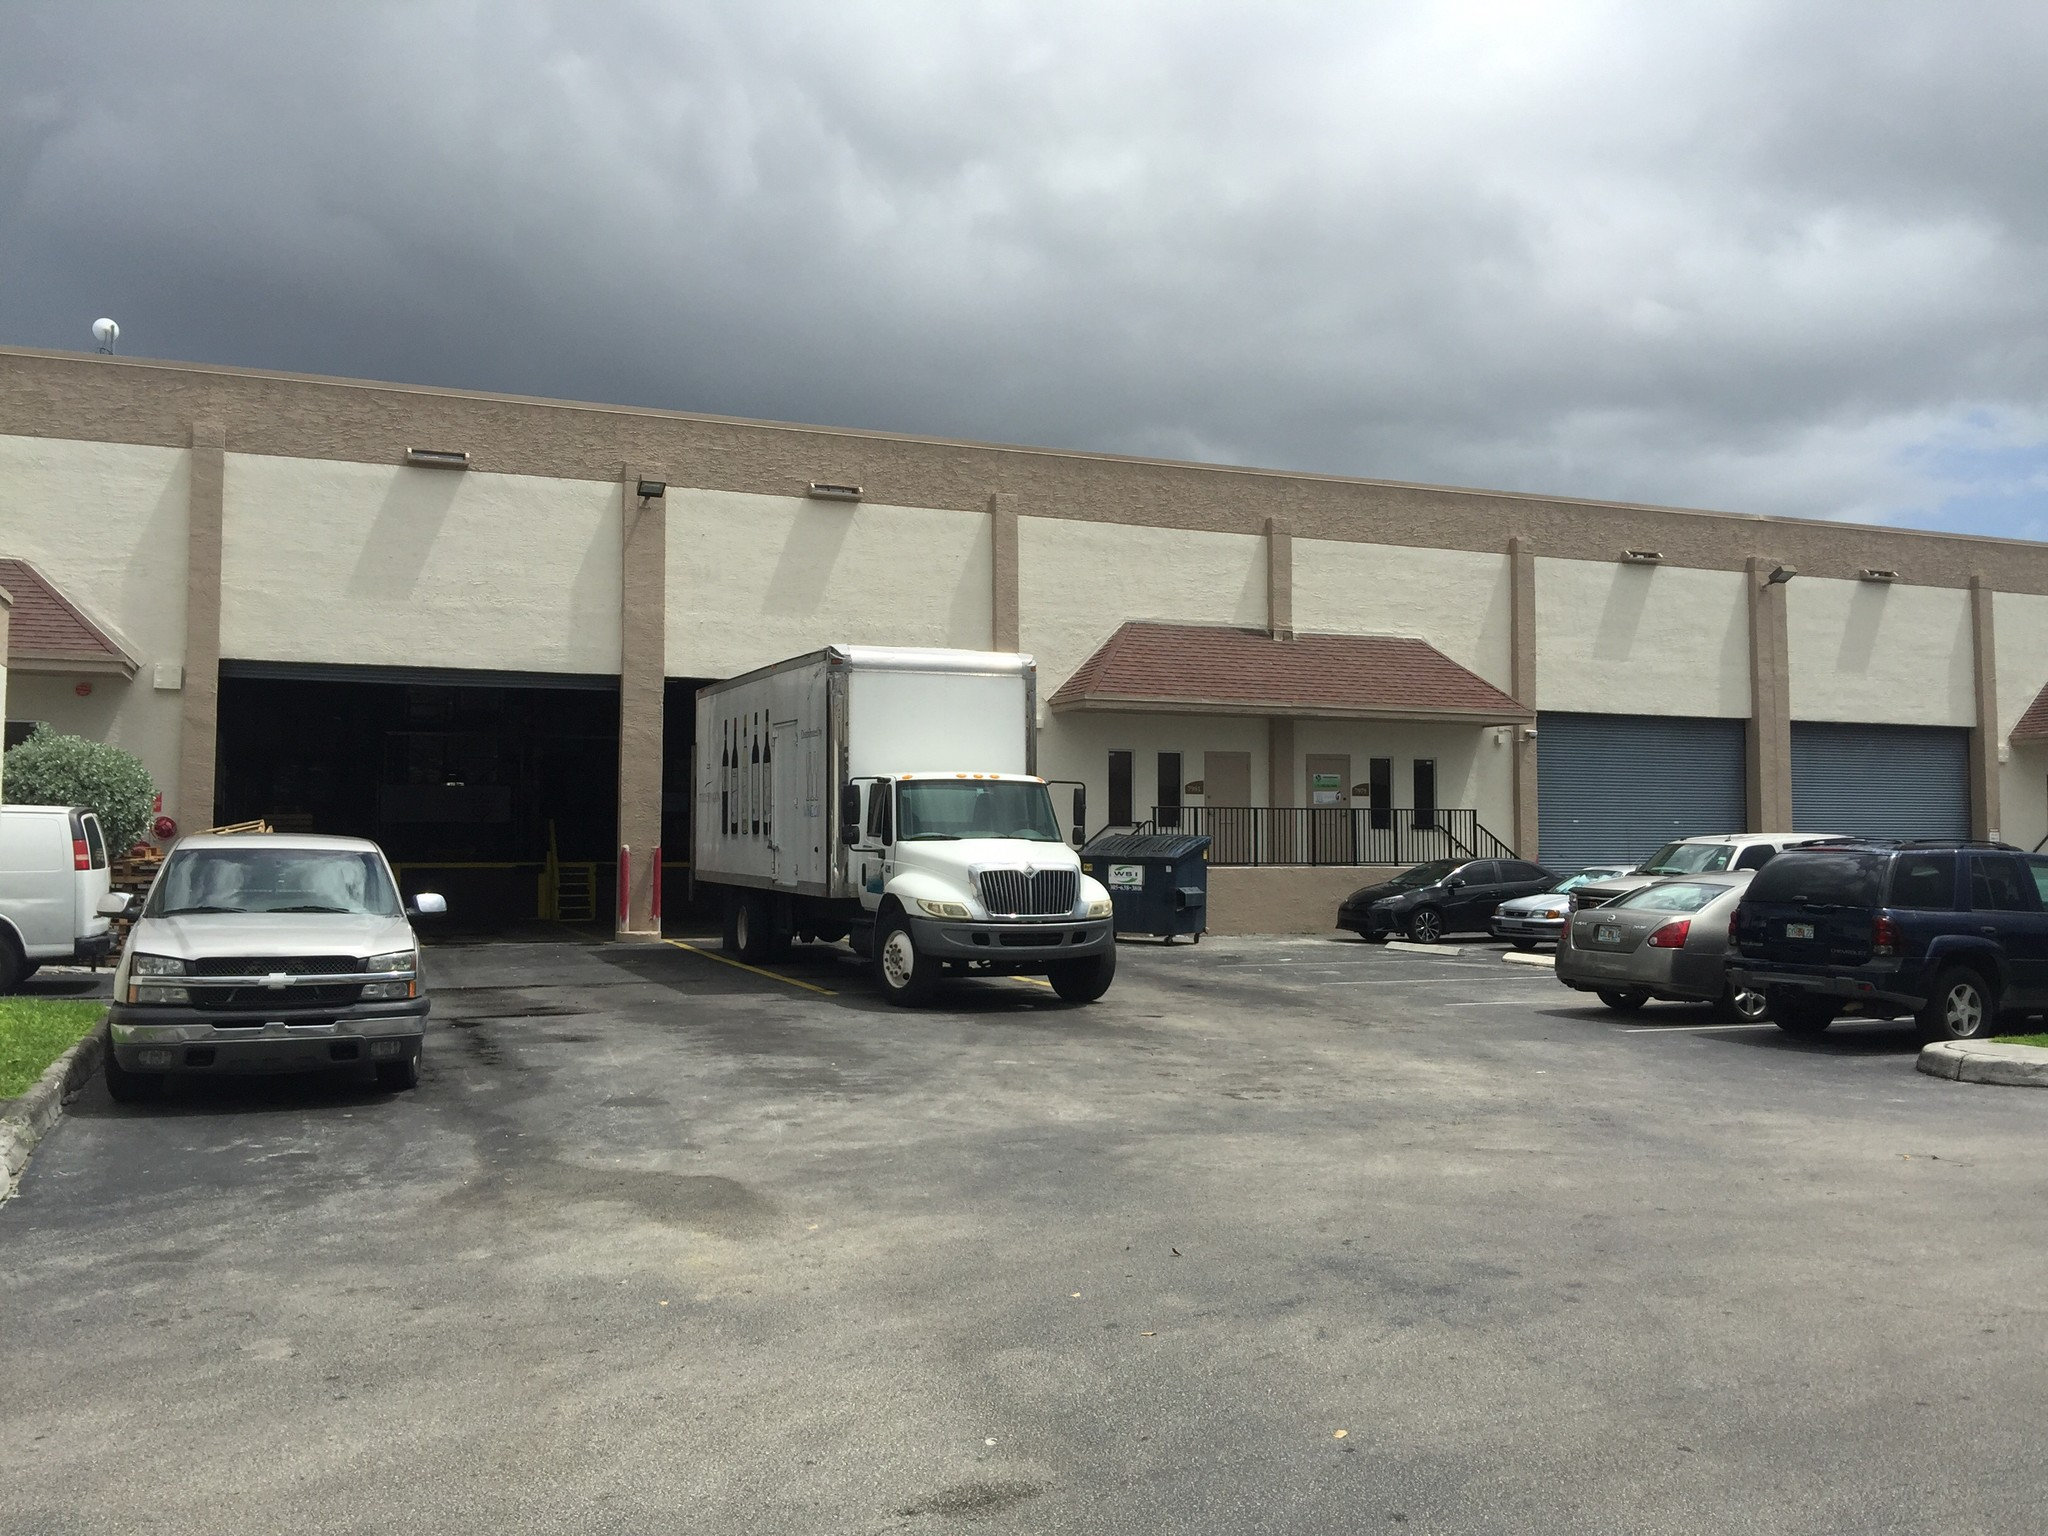 Lee & Associates South Florida's Michael Avendano Represents Tenant in 16,200 SF Lease at PS Business Parks MICC in Doral